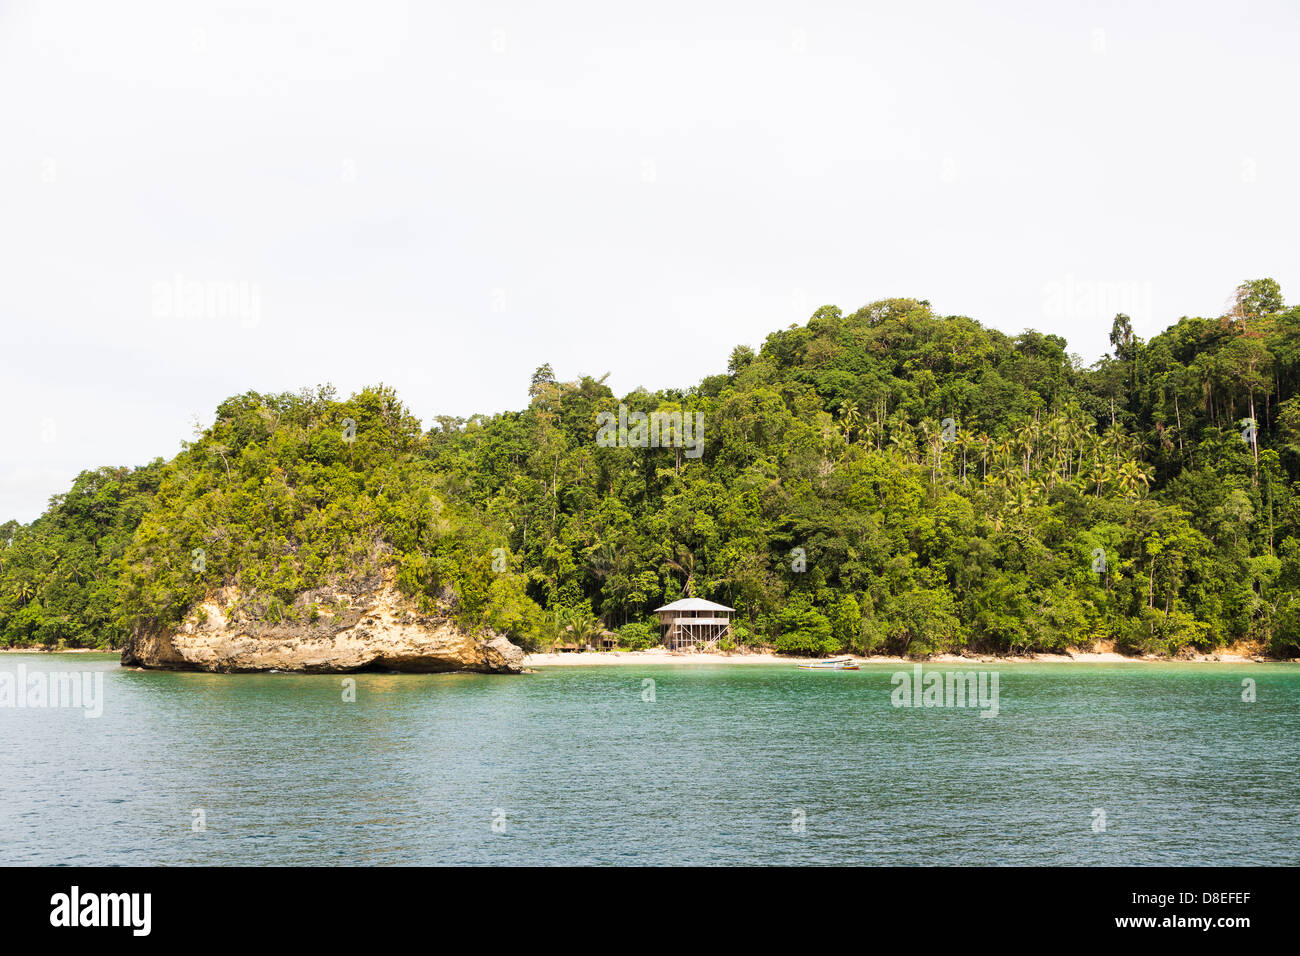 An isolated beach in the Togians island in Sulawesi, Indonesia - Stock Image